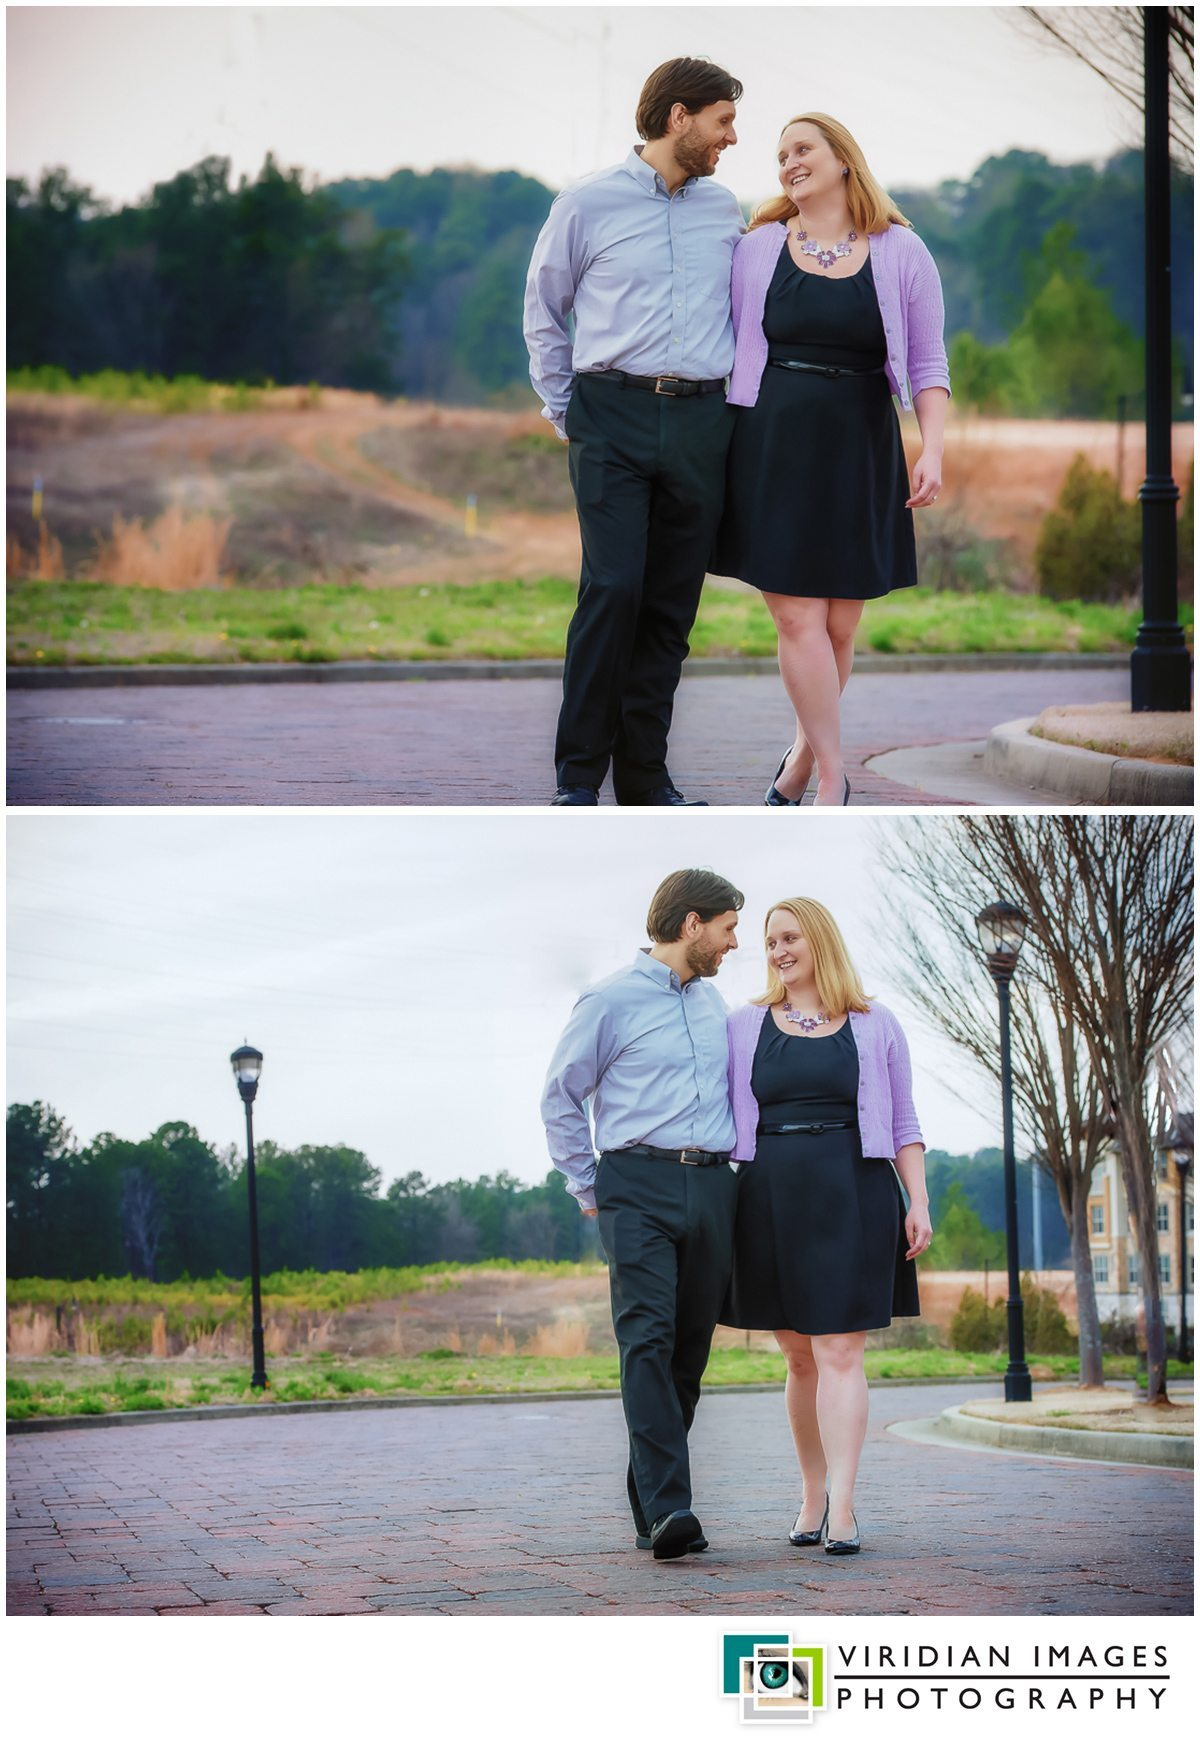 Atlanta_Engagement_ViridianImages_Hillary_Bruce_photo-17